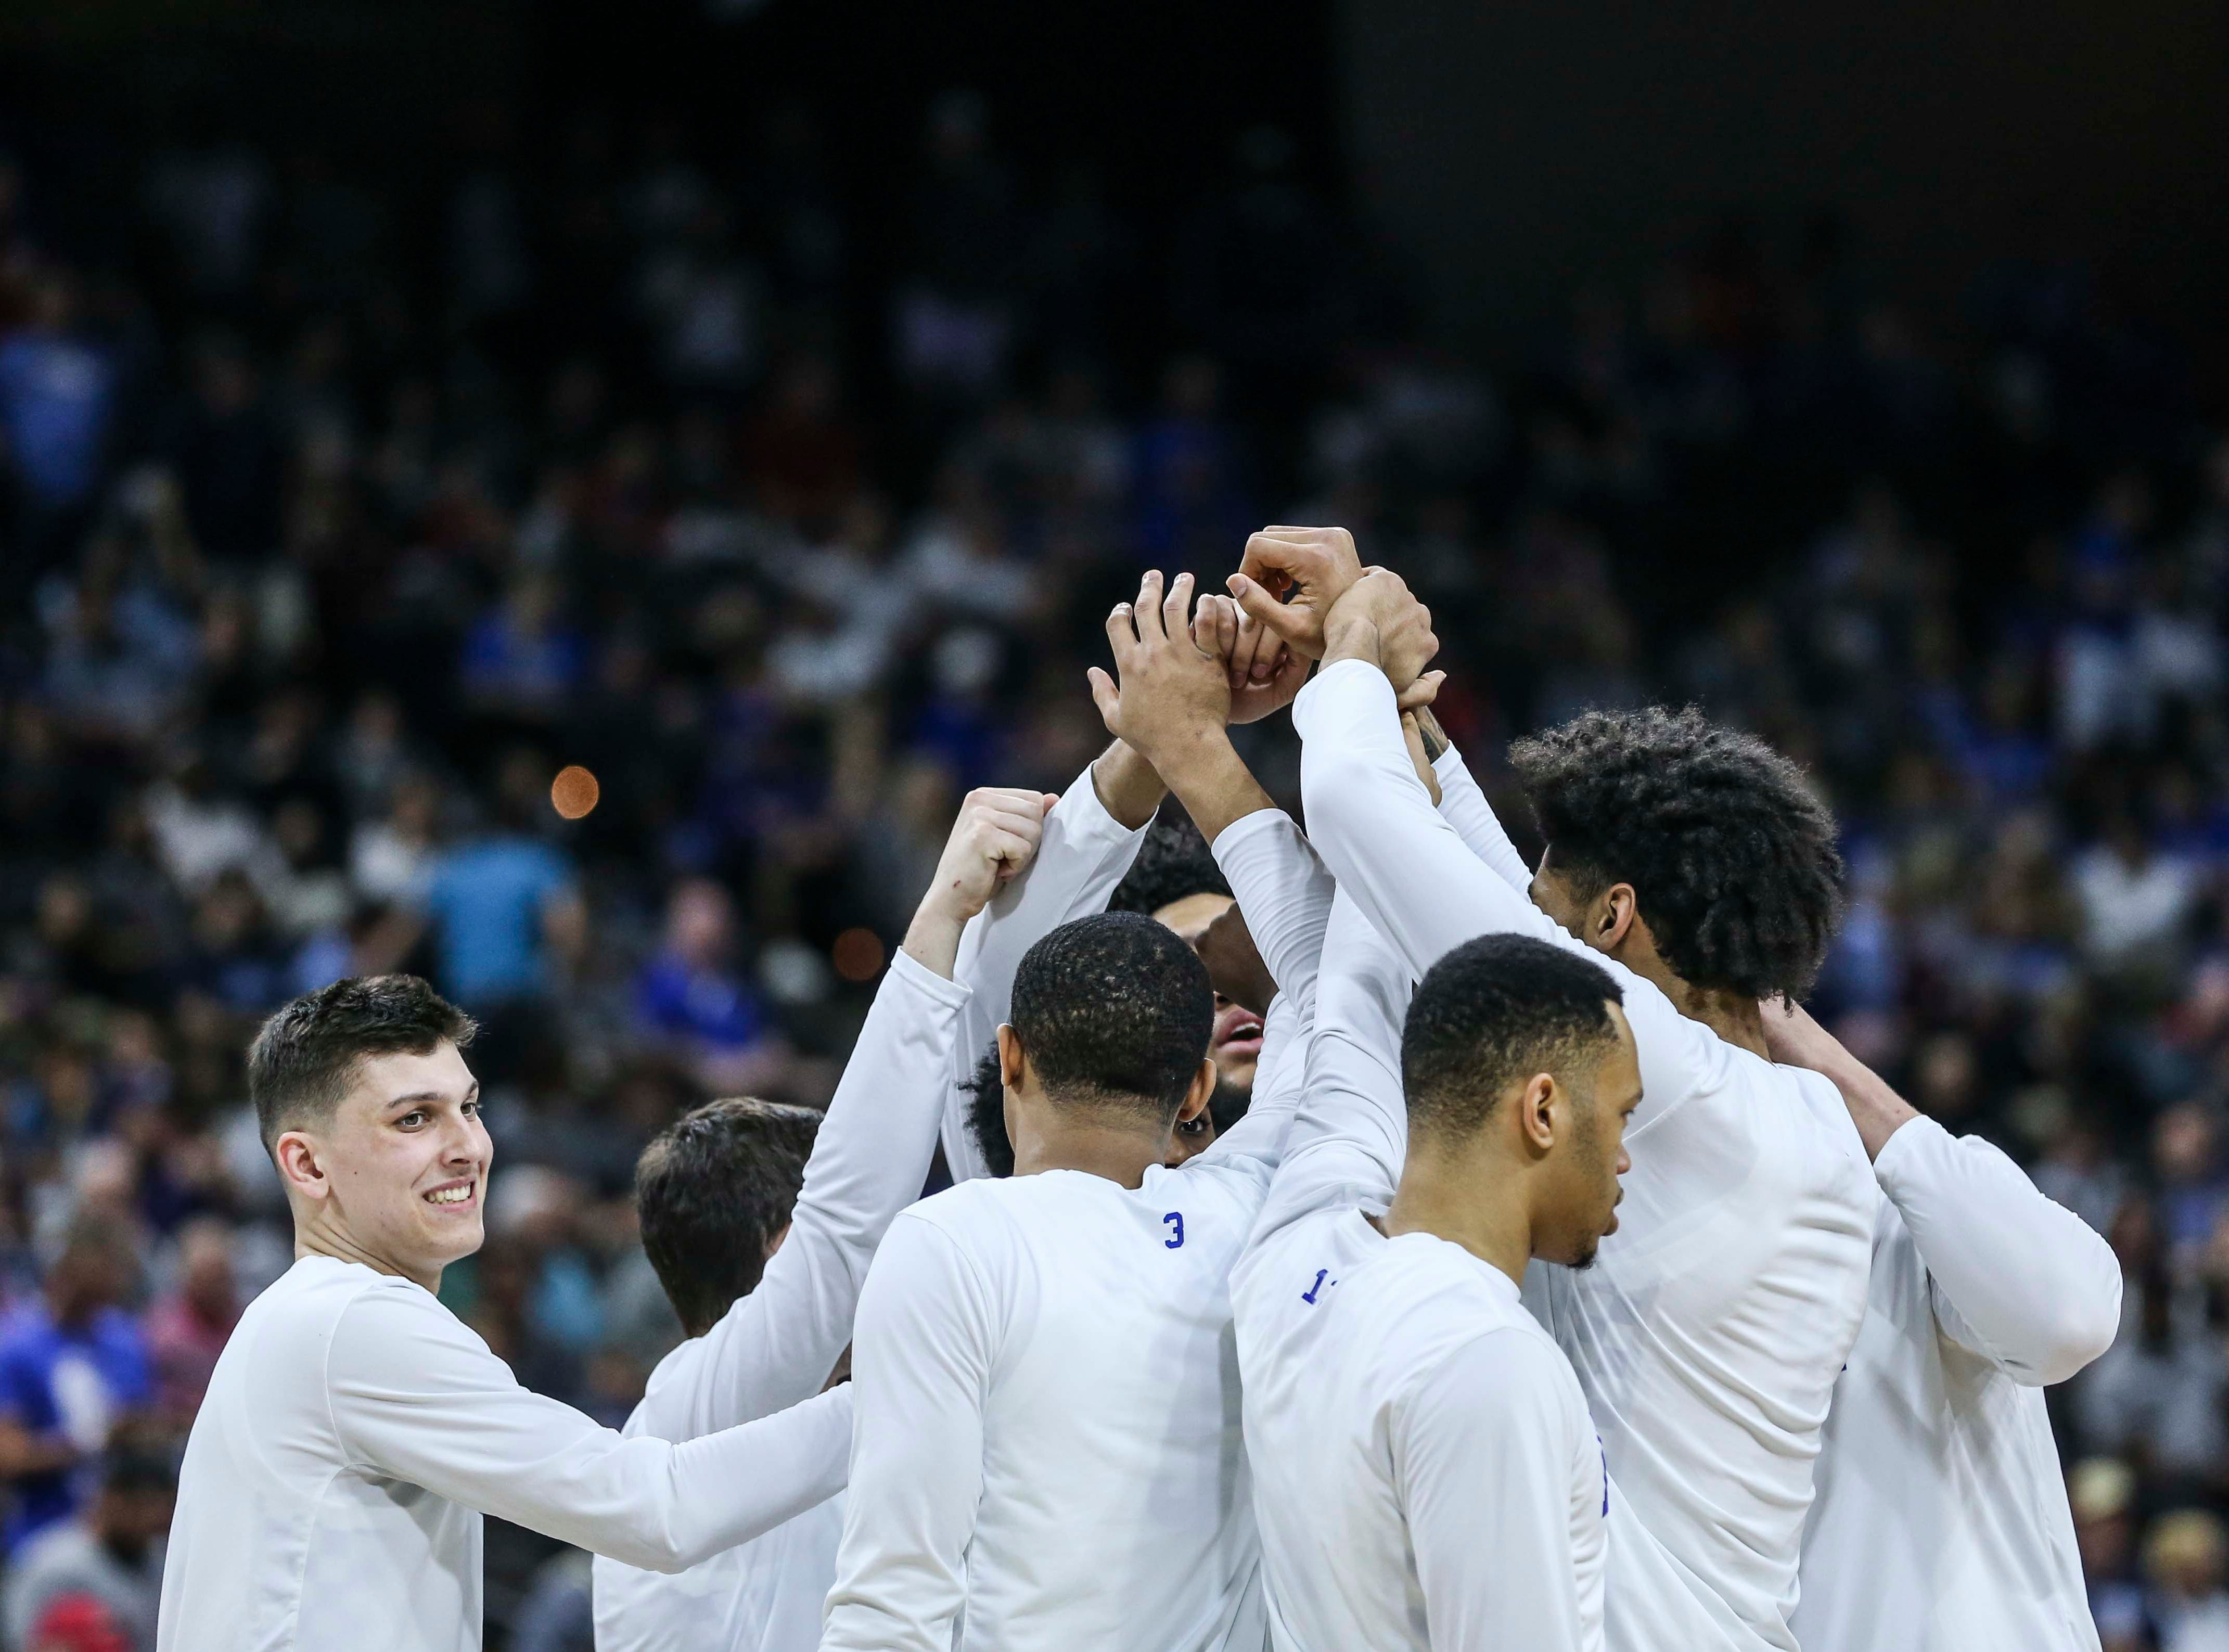 Scenes from Jacksonville: The Wildcats muscled its way past a tenacious Wofford 62-56 in the second round game of the 2019 NCAA tournament in Jacksonville, Fla. March 23, 2019